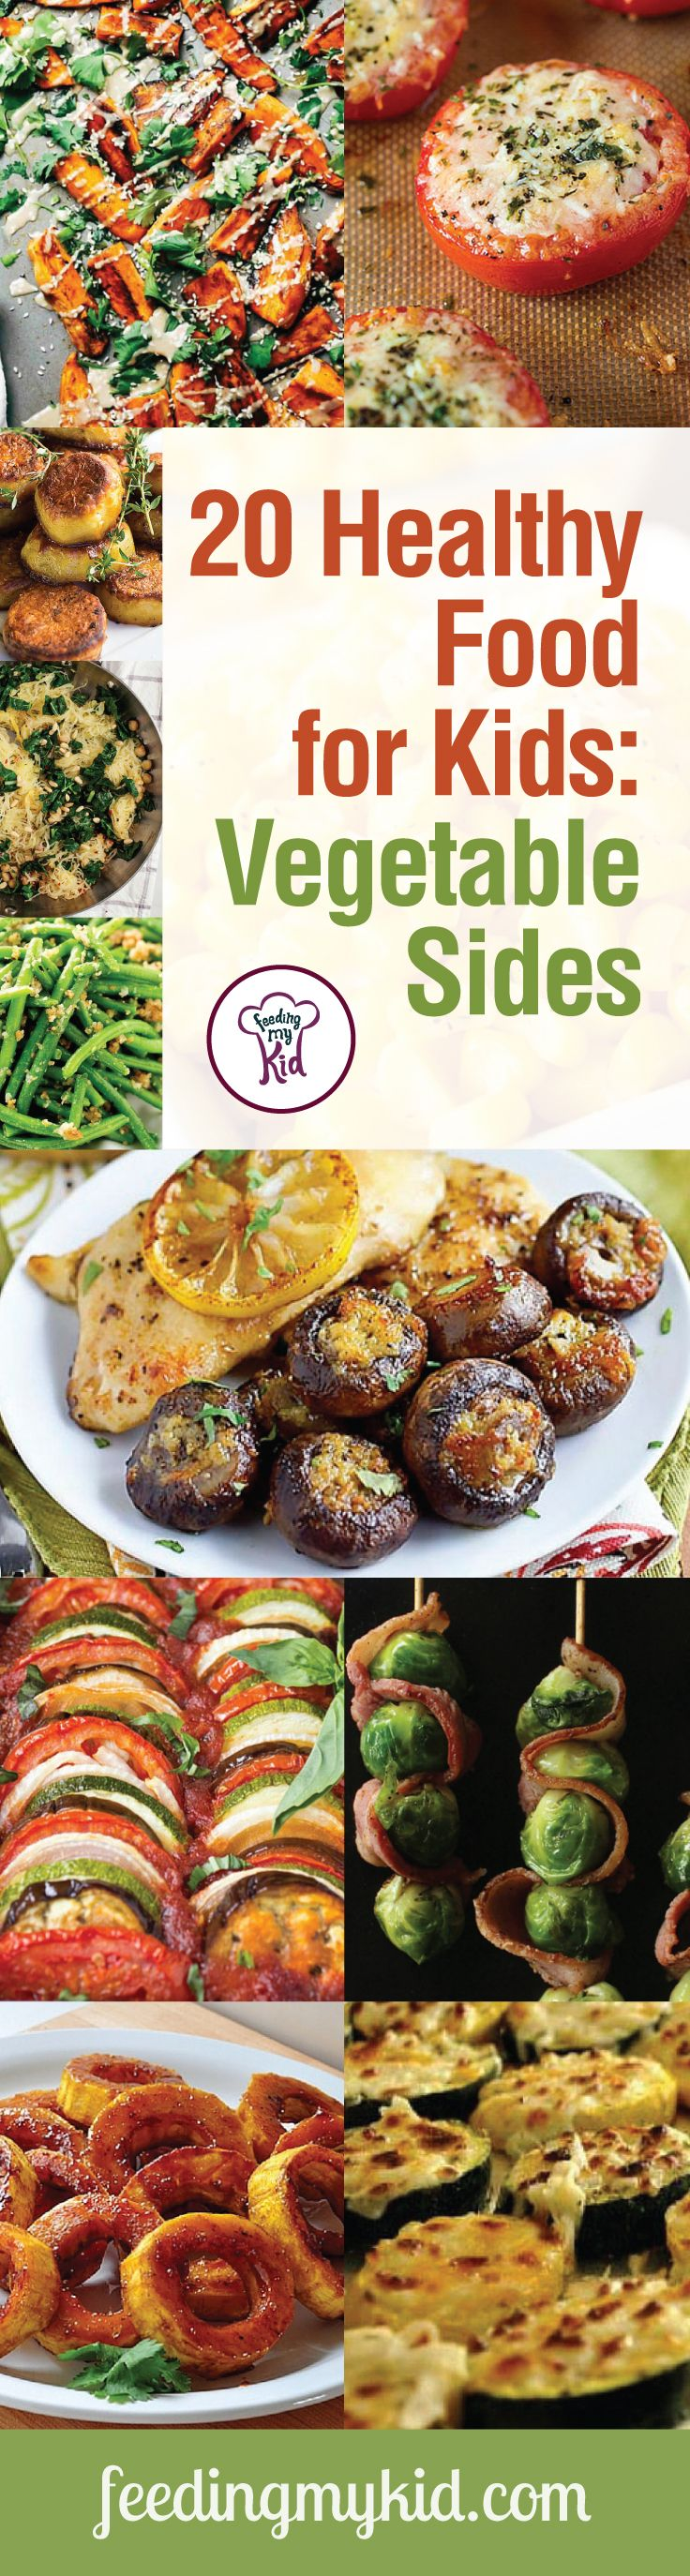 20 Healthy Food for Kids: Vegetable Sides - It can be hard to get your kids to eat vegetables. That's why we've put together this list of healthy and tasty vegetable side dishes that your kid just won't refuse. From baked zucchini with mozzarella to parmesan ranch corn; these recipes will surely please even the pickiest of eaters.